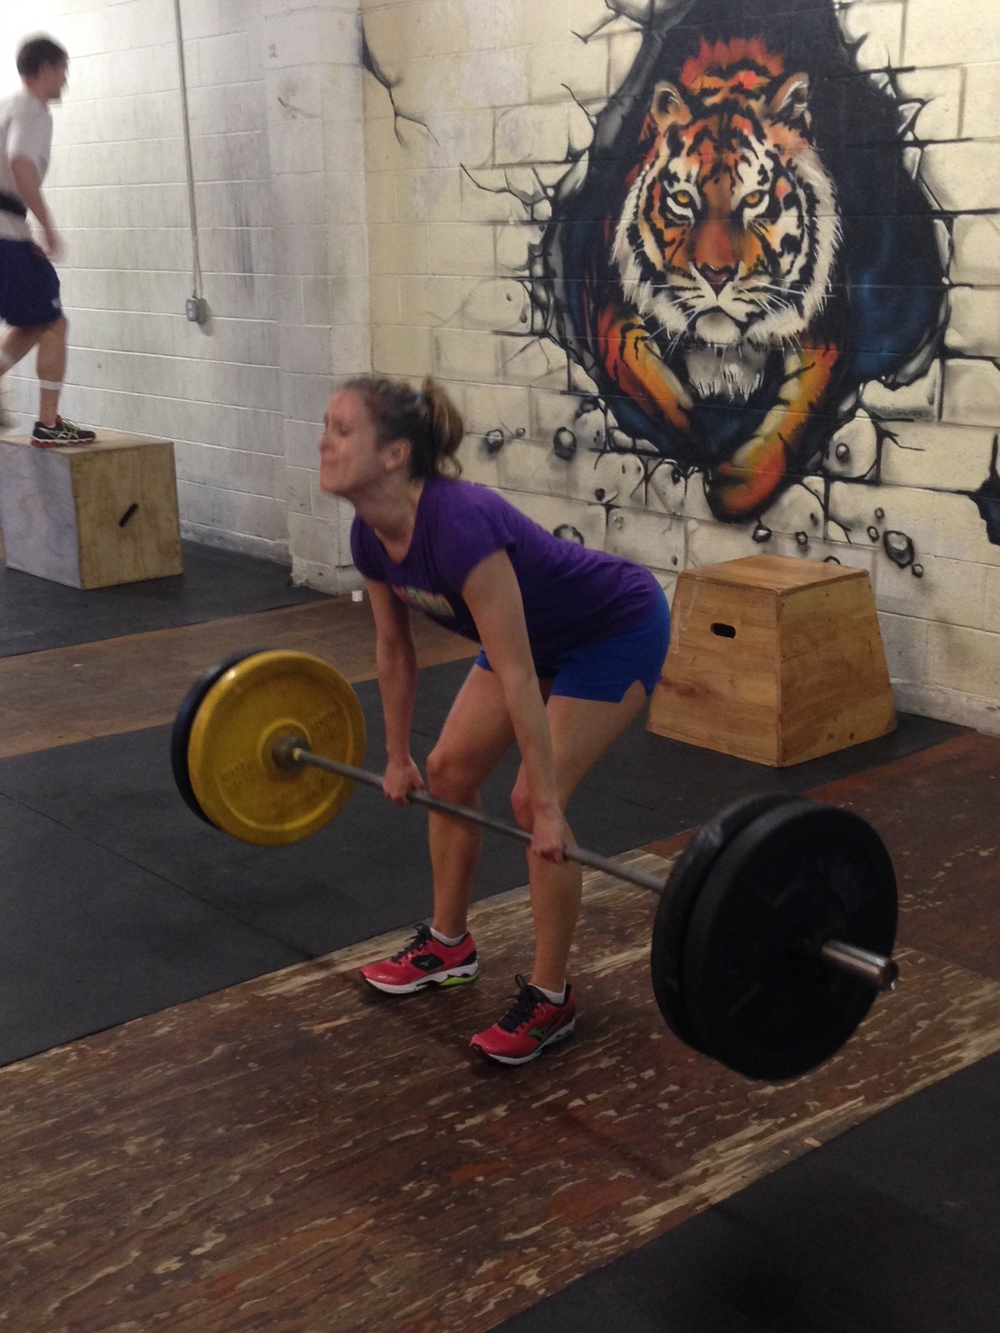 The first rep was a 15 pound PR for Alicia so she decided to do 8 more in 14.3. Great work!!!!